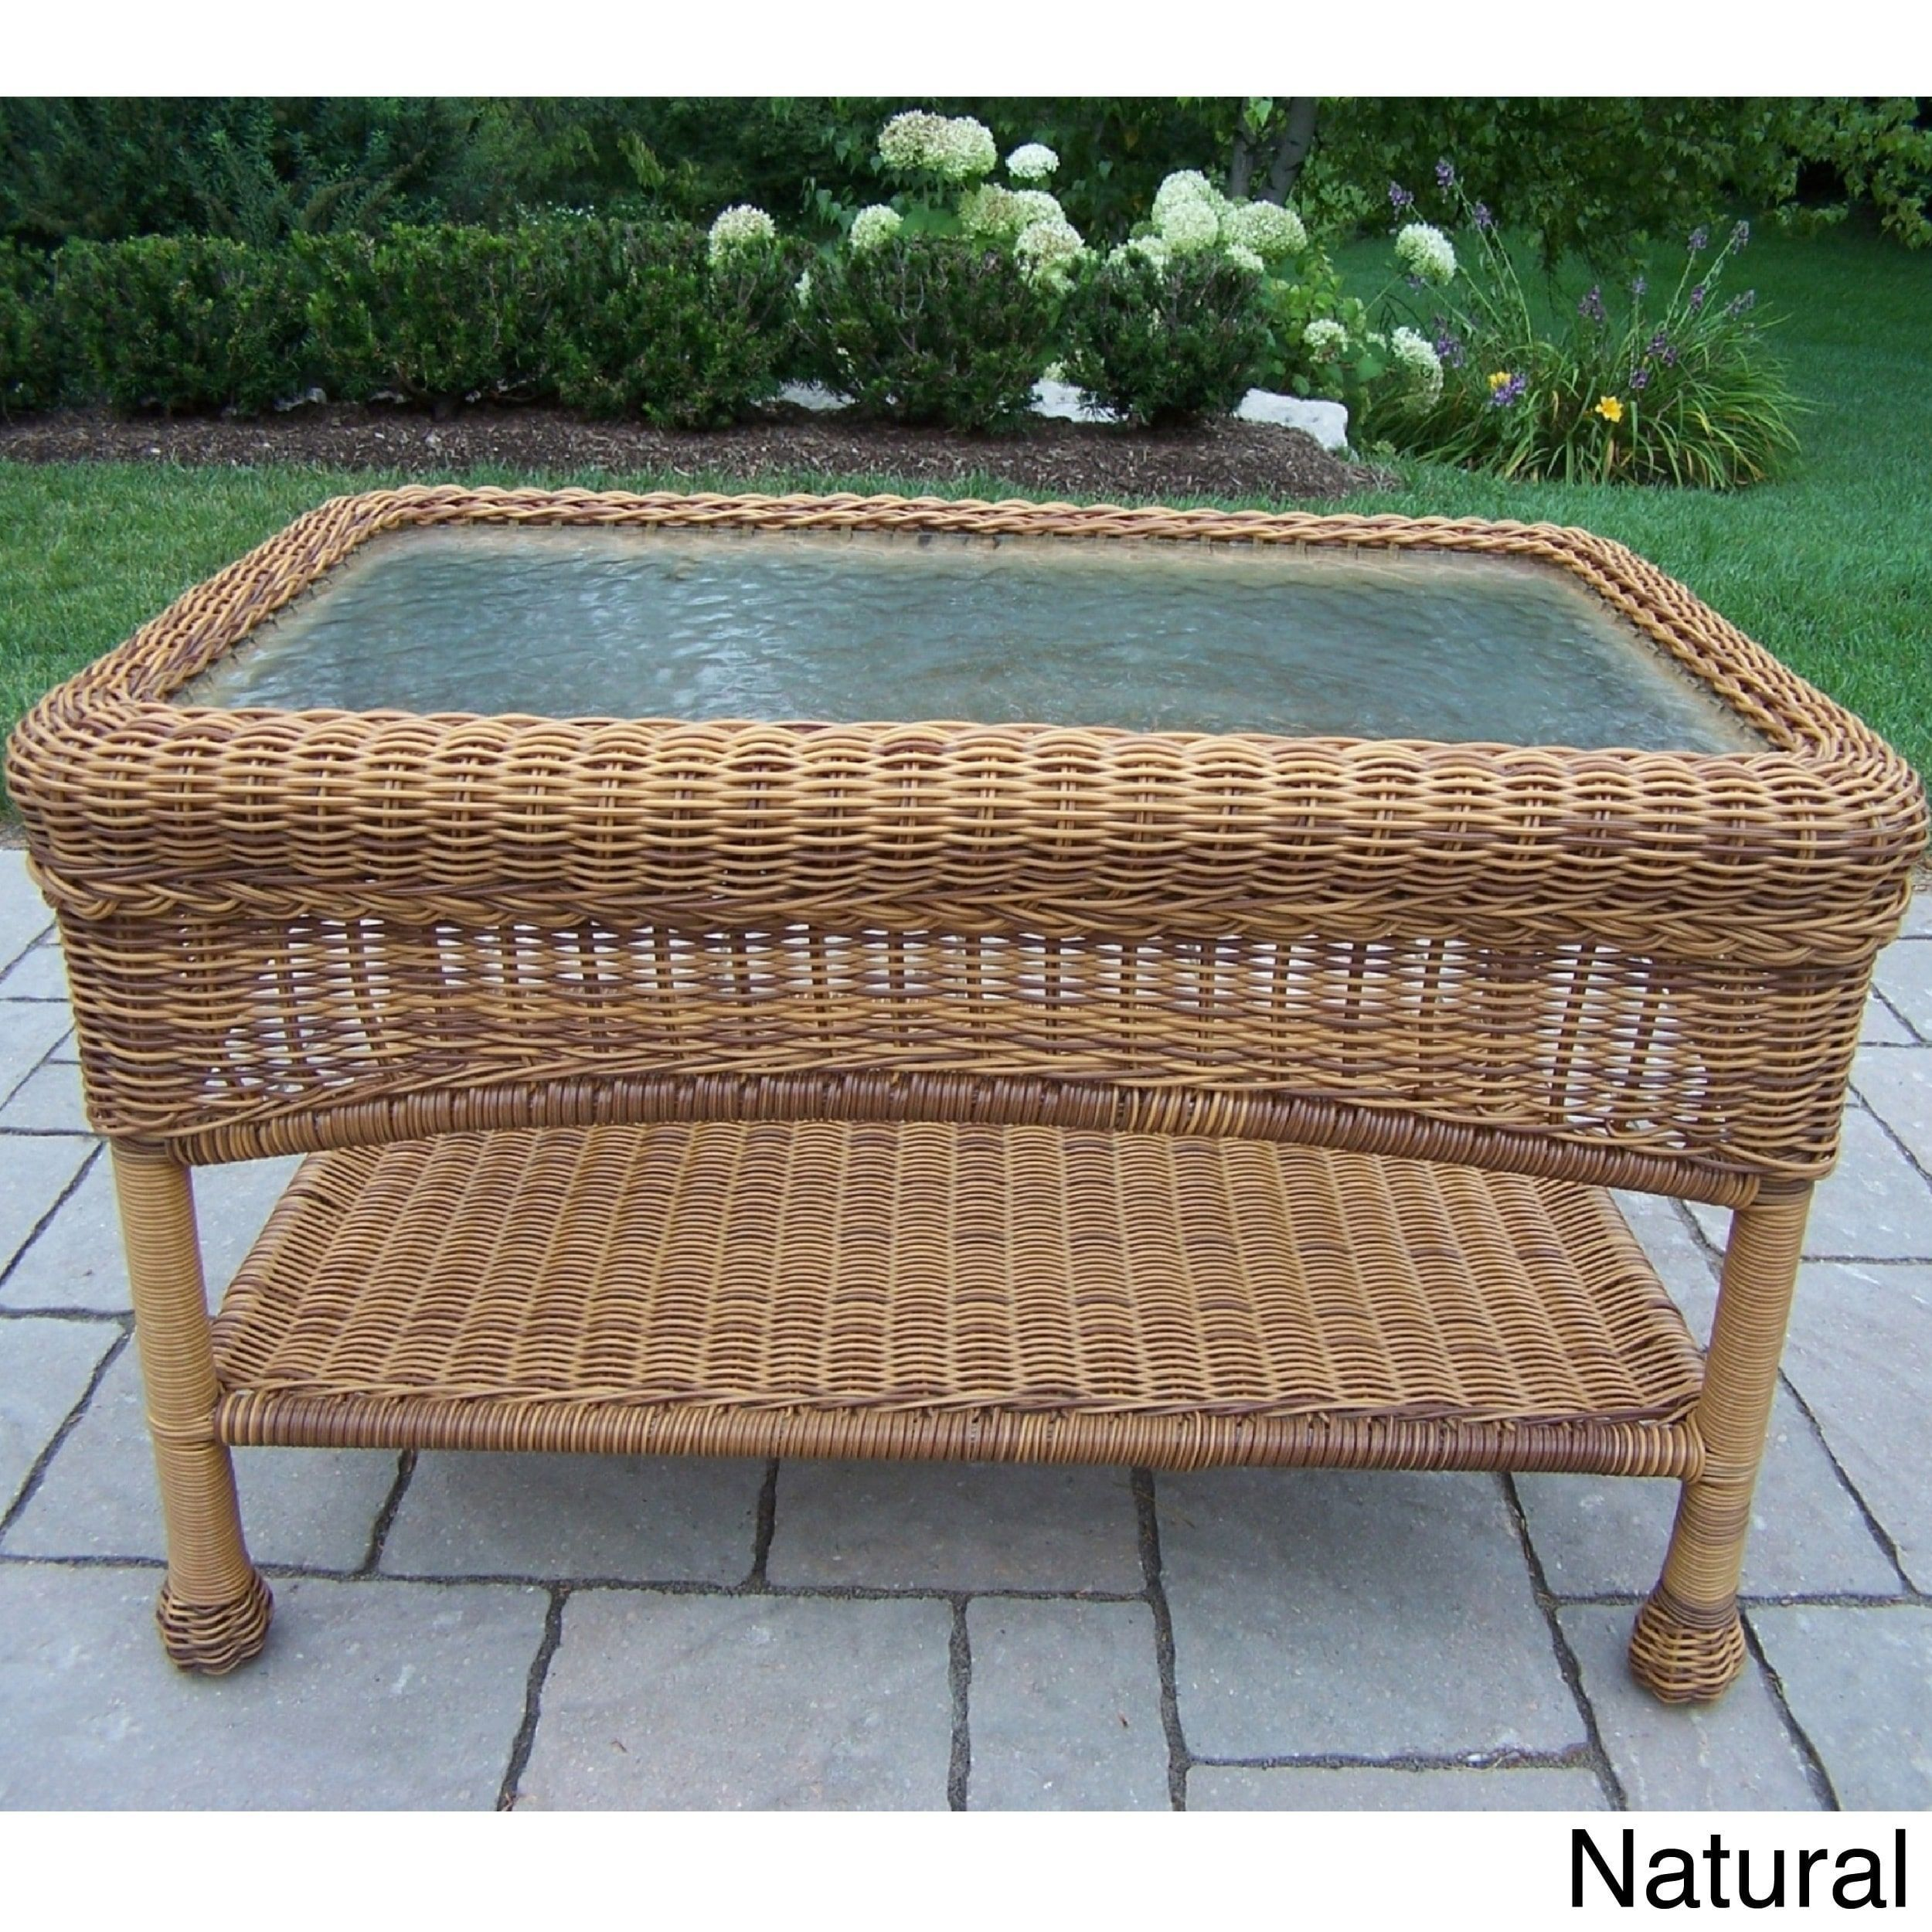 Premium 29 X 17 5 Resin Wicker Coffee Table White Oakland Living Corporation Glass Wicker Coffee Table Coffee Table Rectangle Wicker